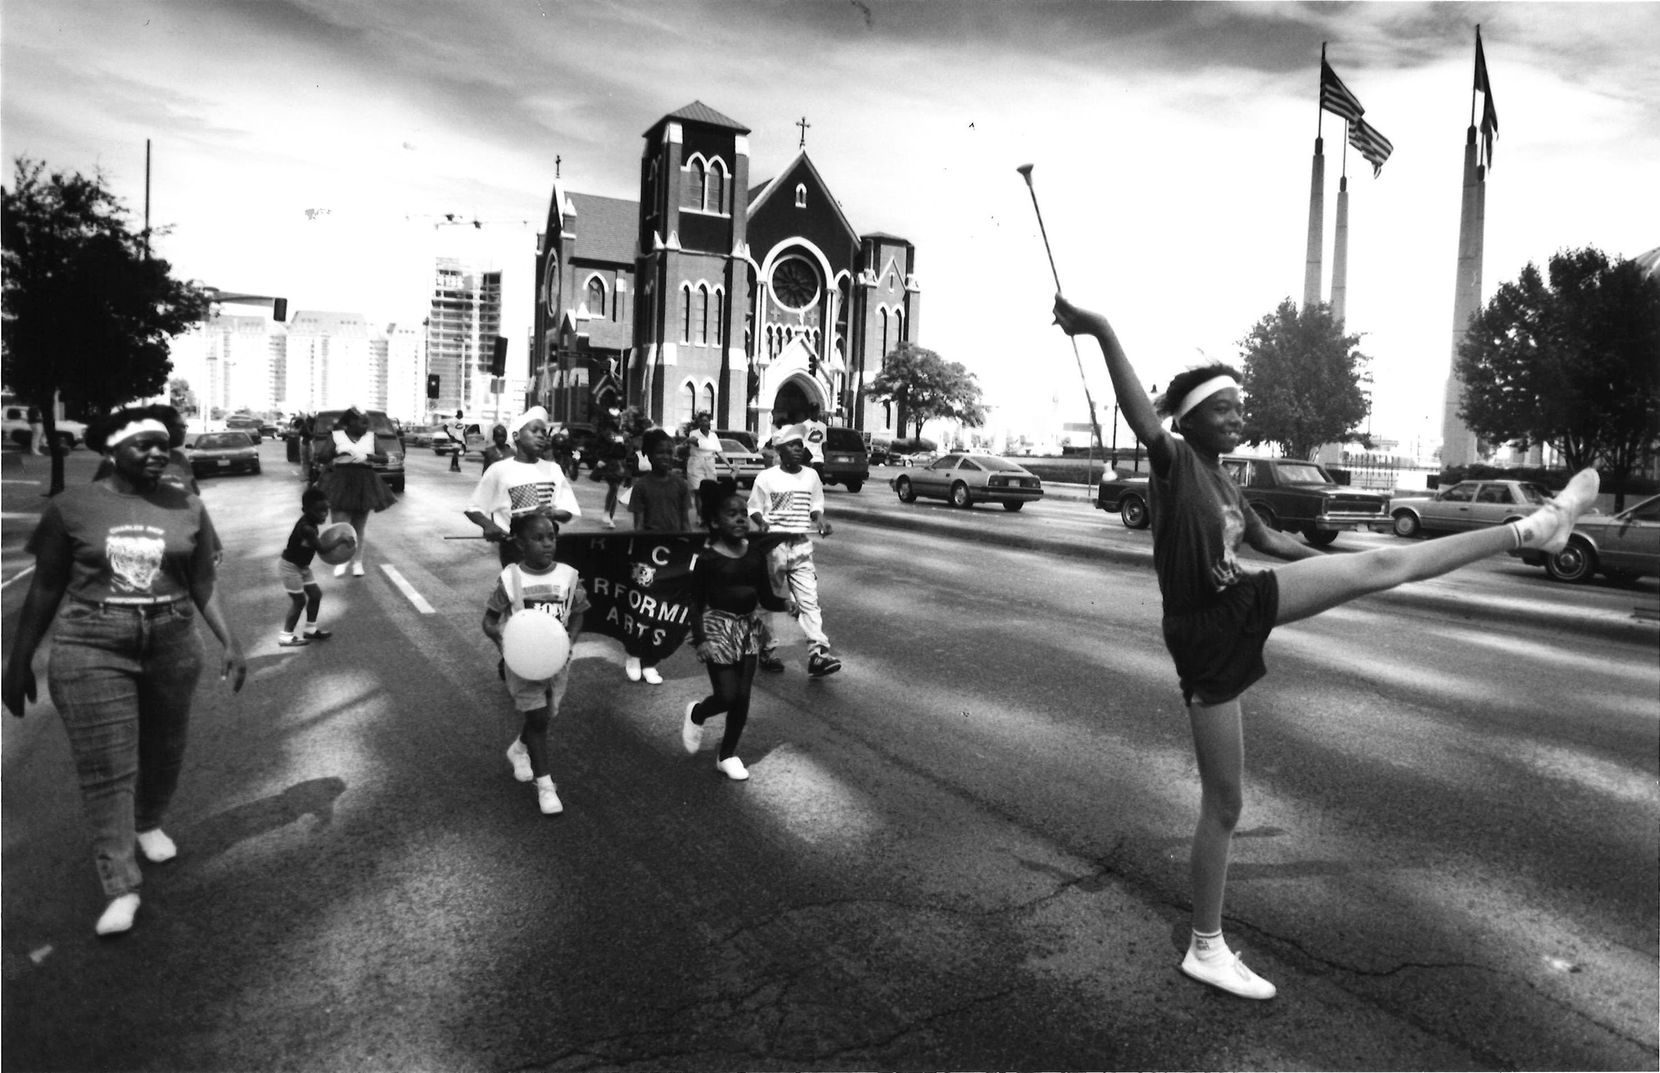 Andrea Lockley led the Charles Rice Performing Arts Marching Group down Pearl Street.